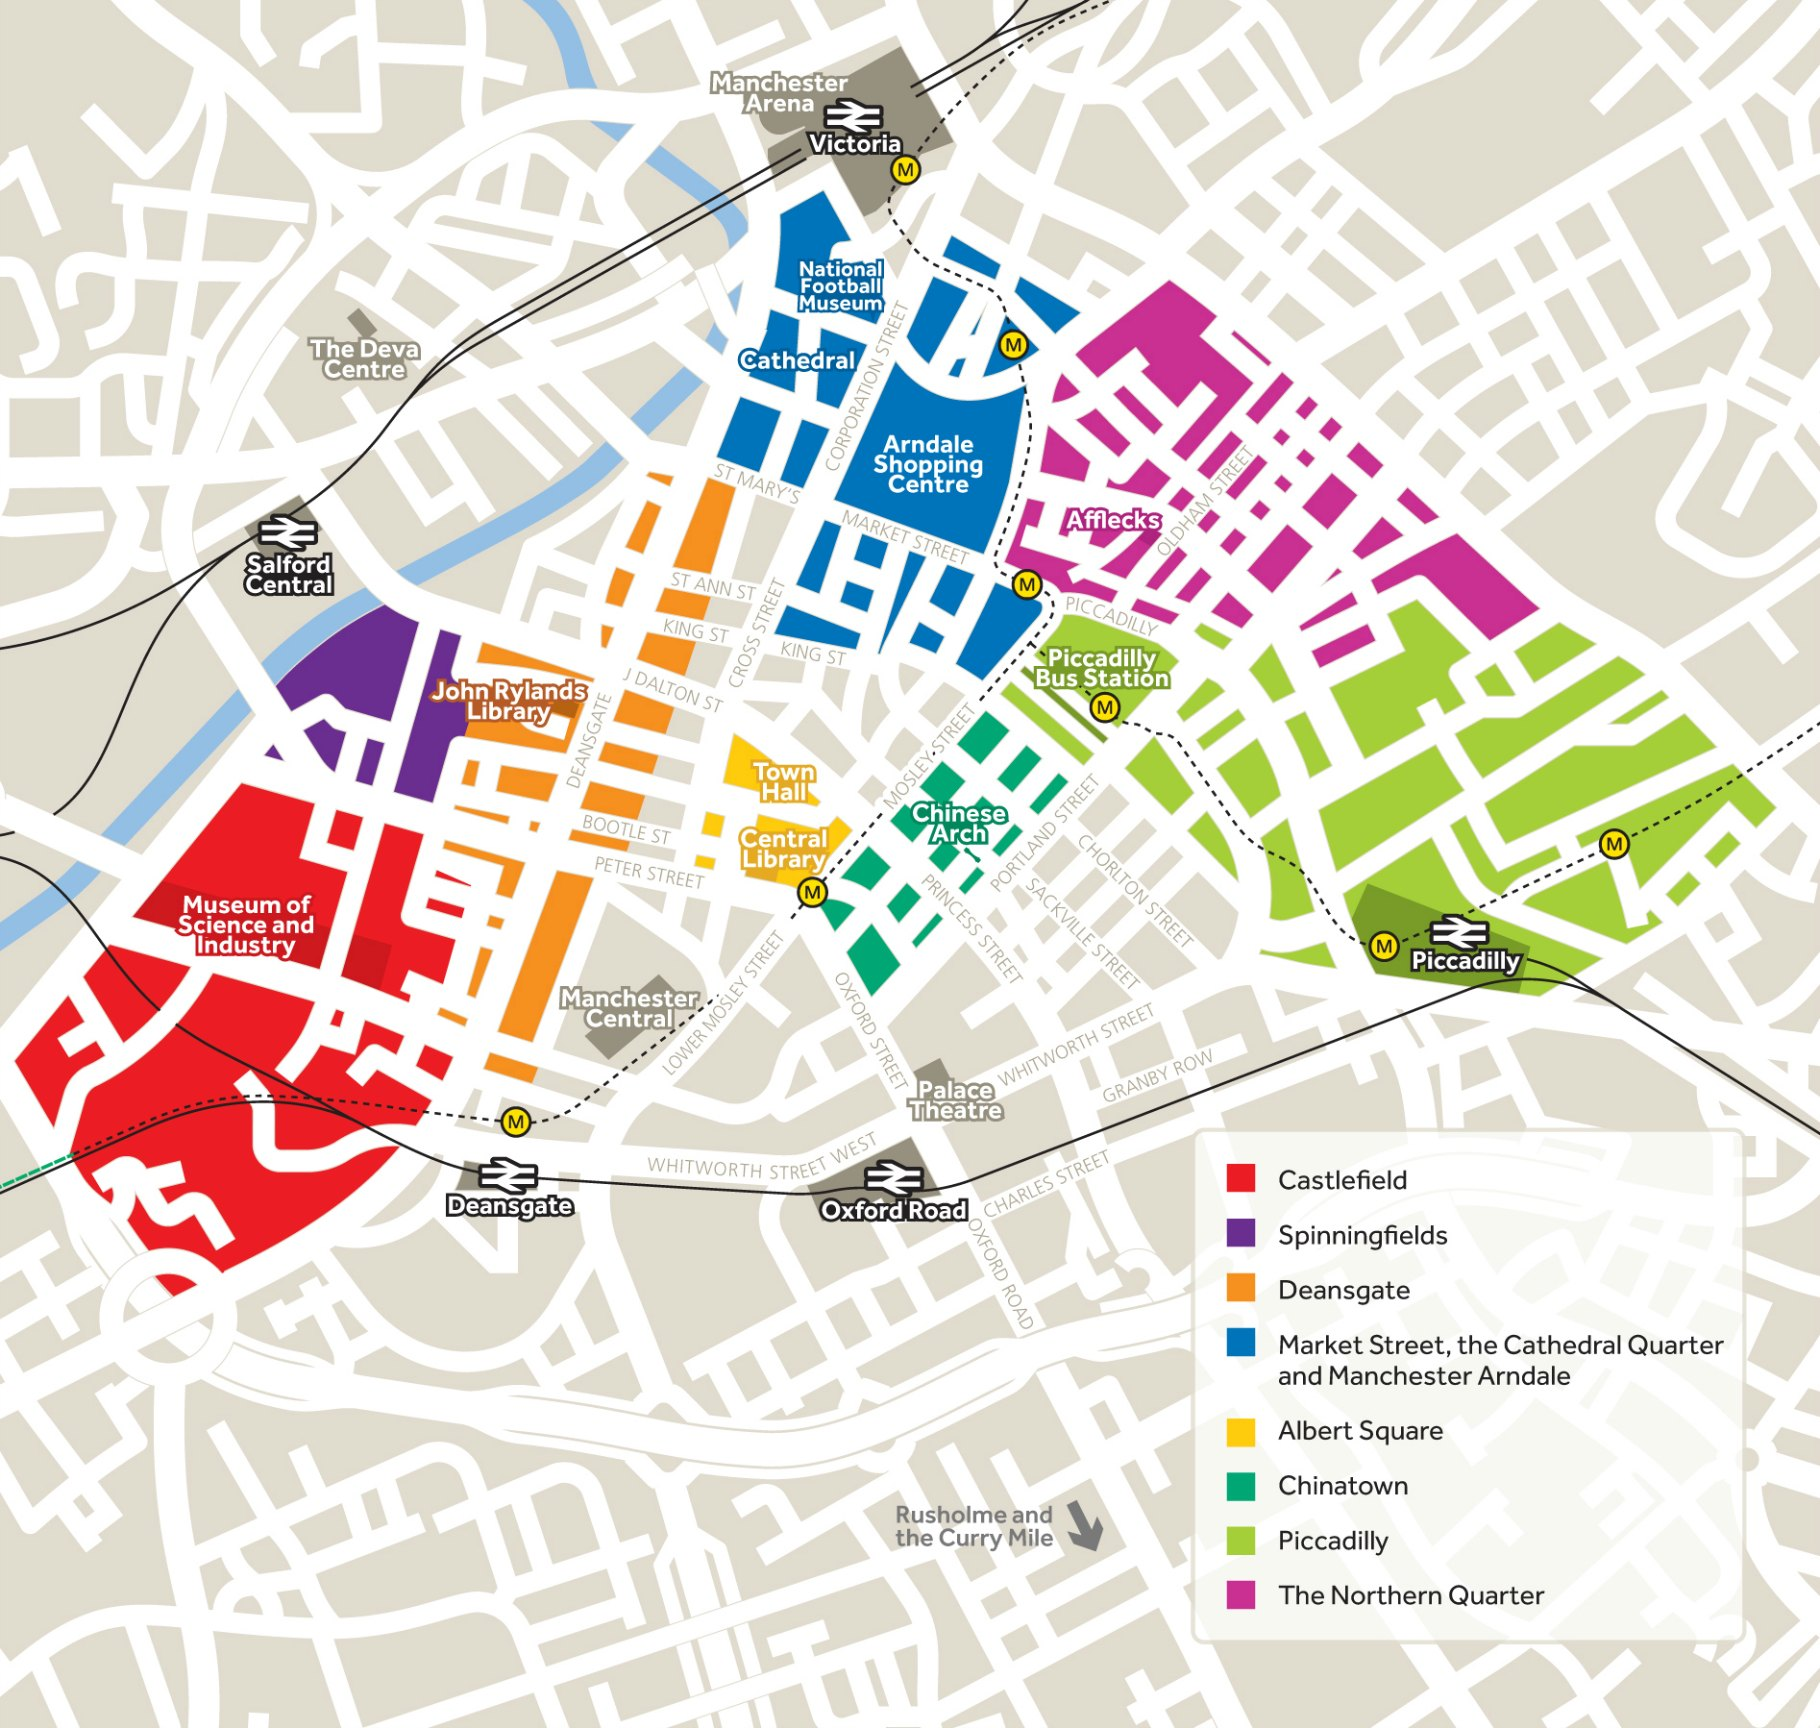 Manchester Uni Map The city of Manchester | The University of Manchester Manchester Uni Map